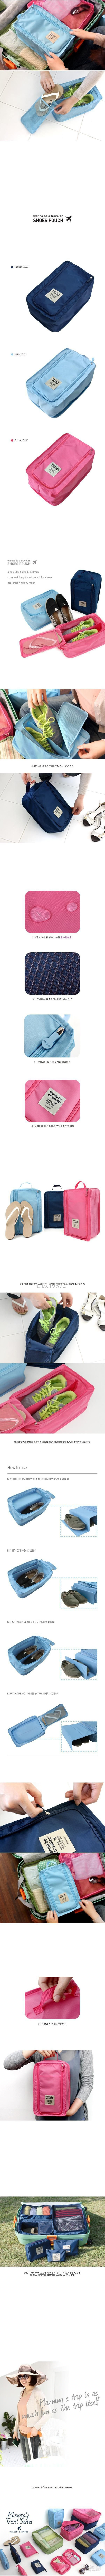 Best Factory Outlet Shoes Punch Travel/Composition Bag for Shoe Large Multifunction Storage Nylon/Mesh Bags Enfoldment Waterproof Hanging Ba...